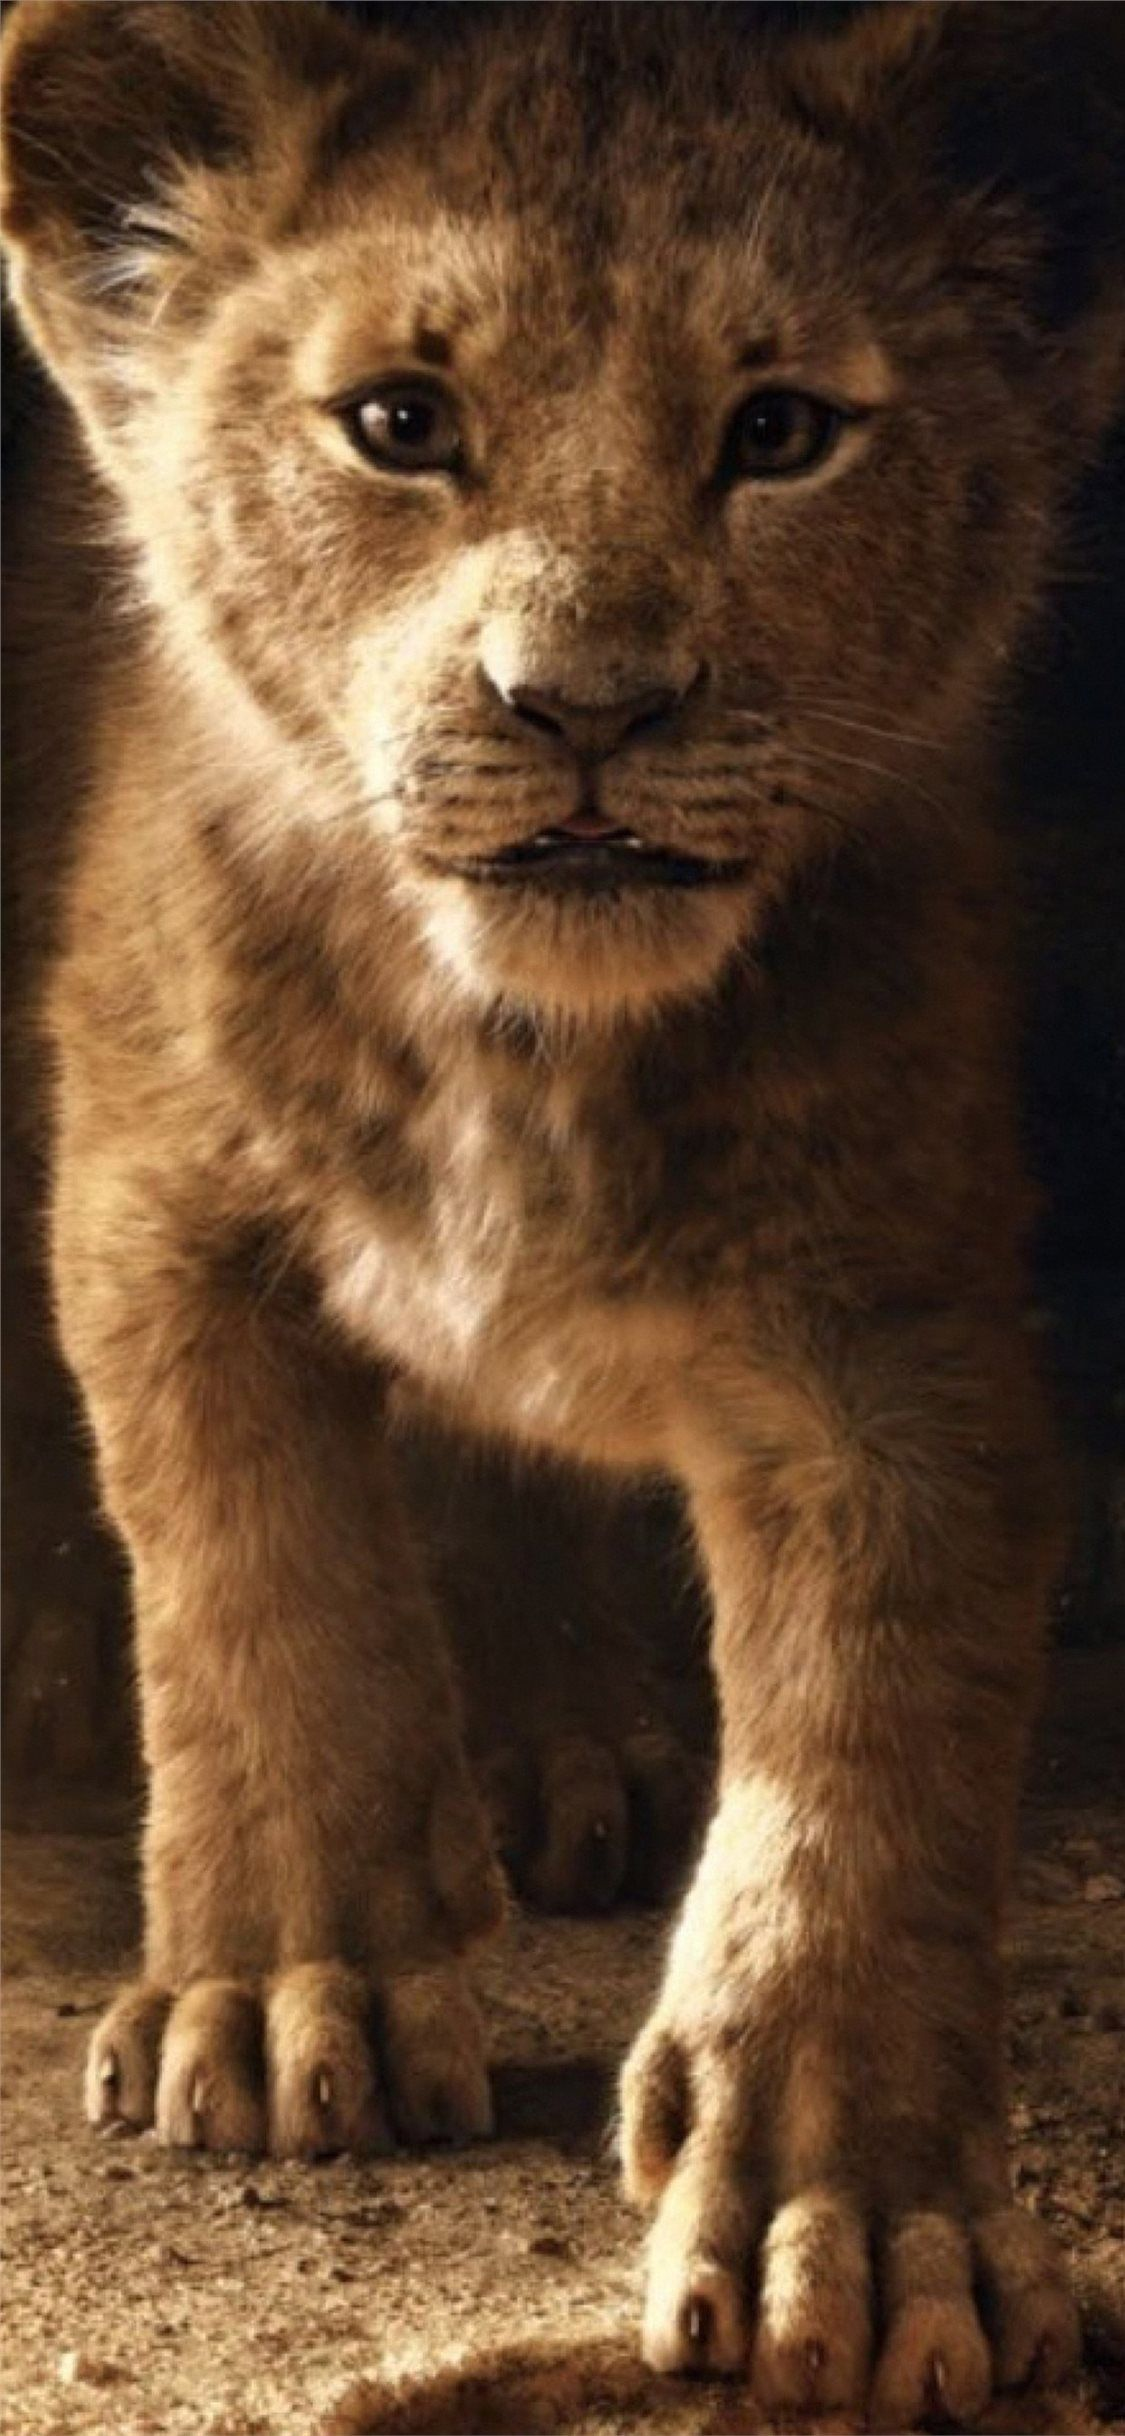 Free Download The The Lion King Simba 2019 4k Wallpaper Beaty Your Iphone The Lion King Lion 2019 Movies Movies 4k Lion King Simba Lion King King Simba Lock screen lion king wallpaper hd 2019